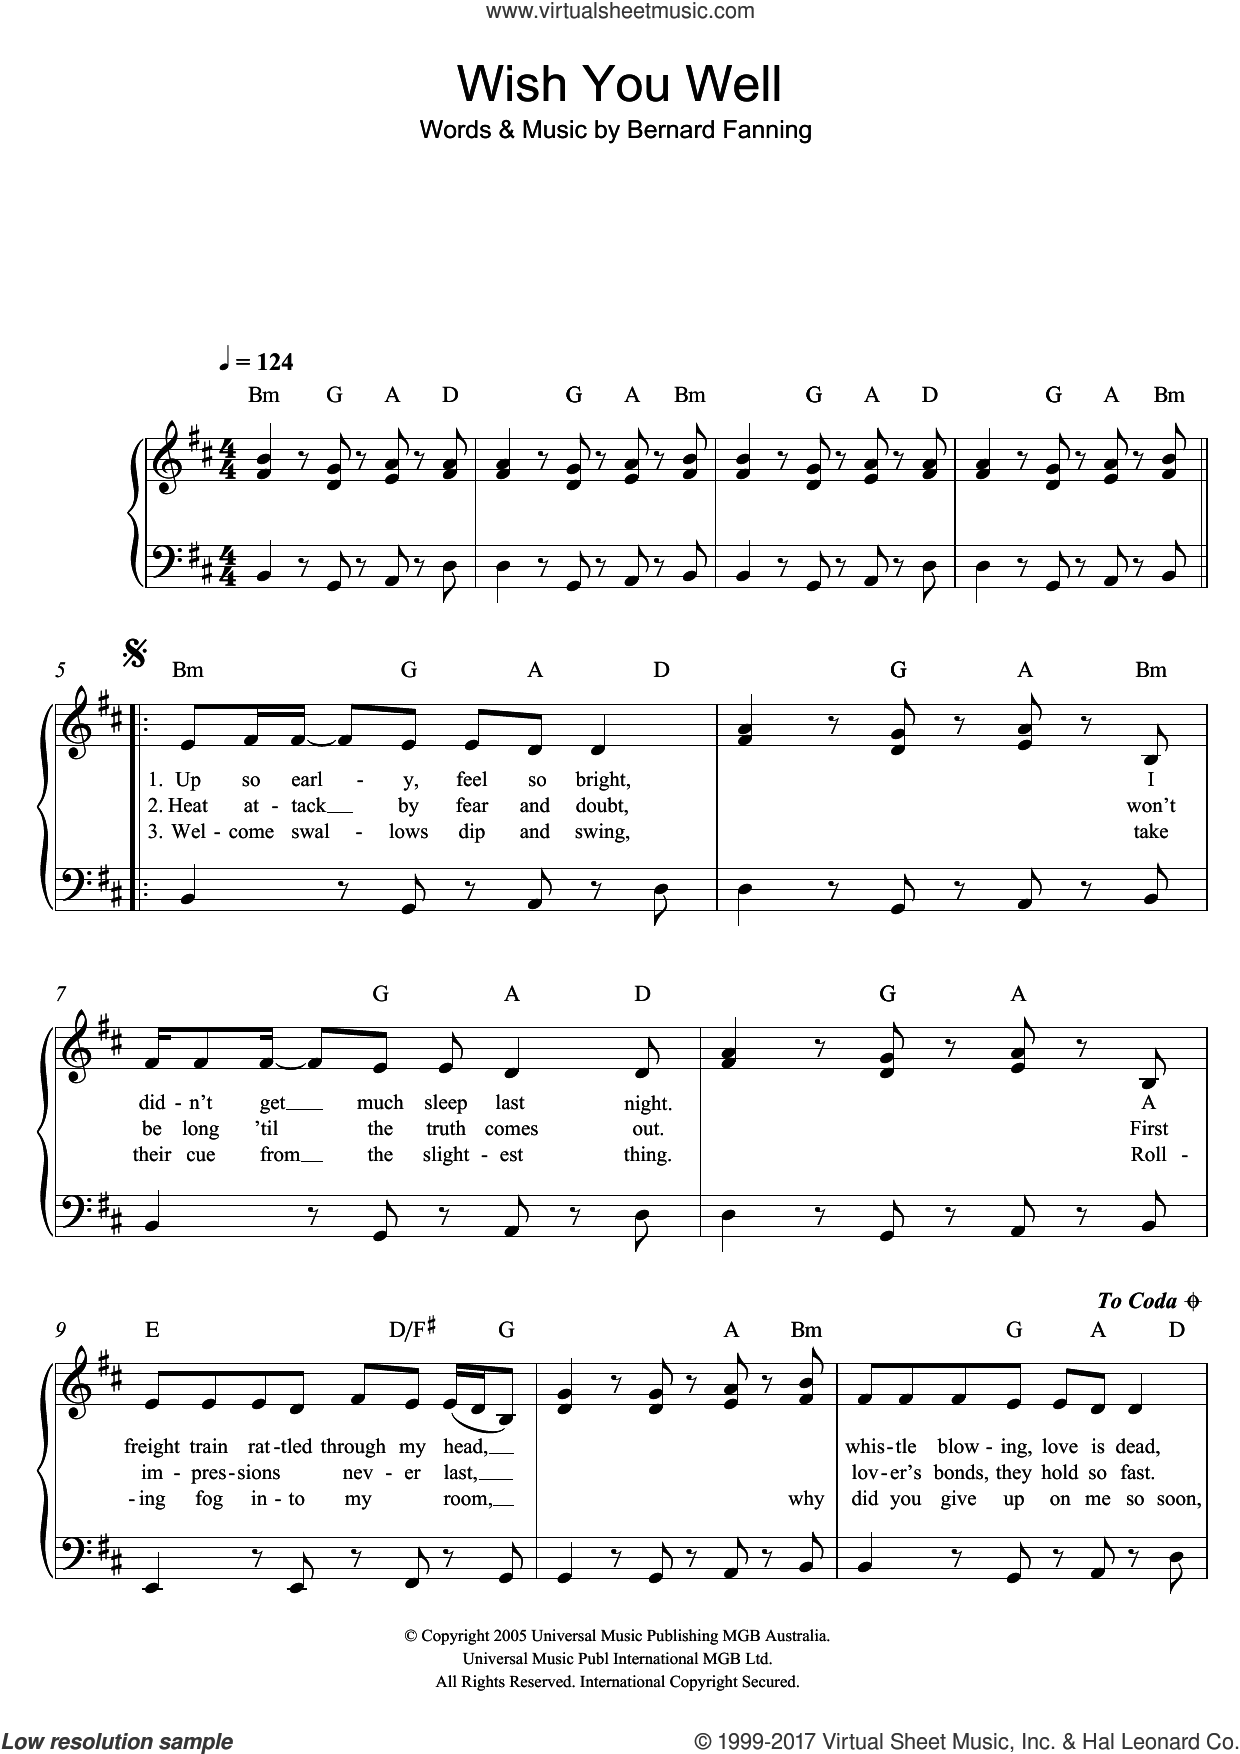 Wish You Well sheet music for piano solo by Bernard Fanning, easy skill level